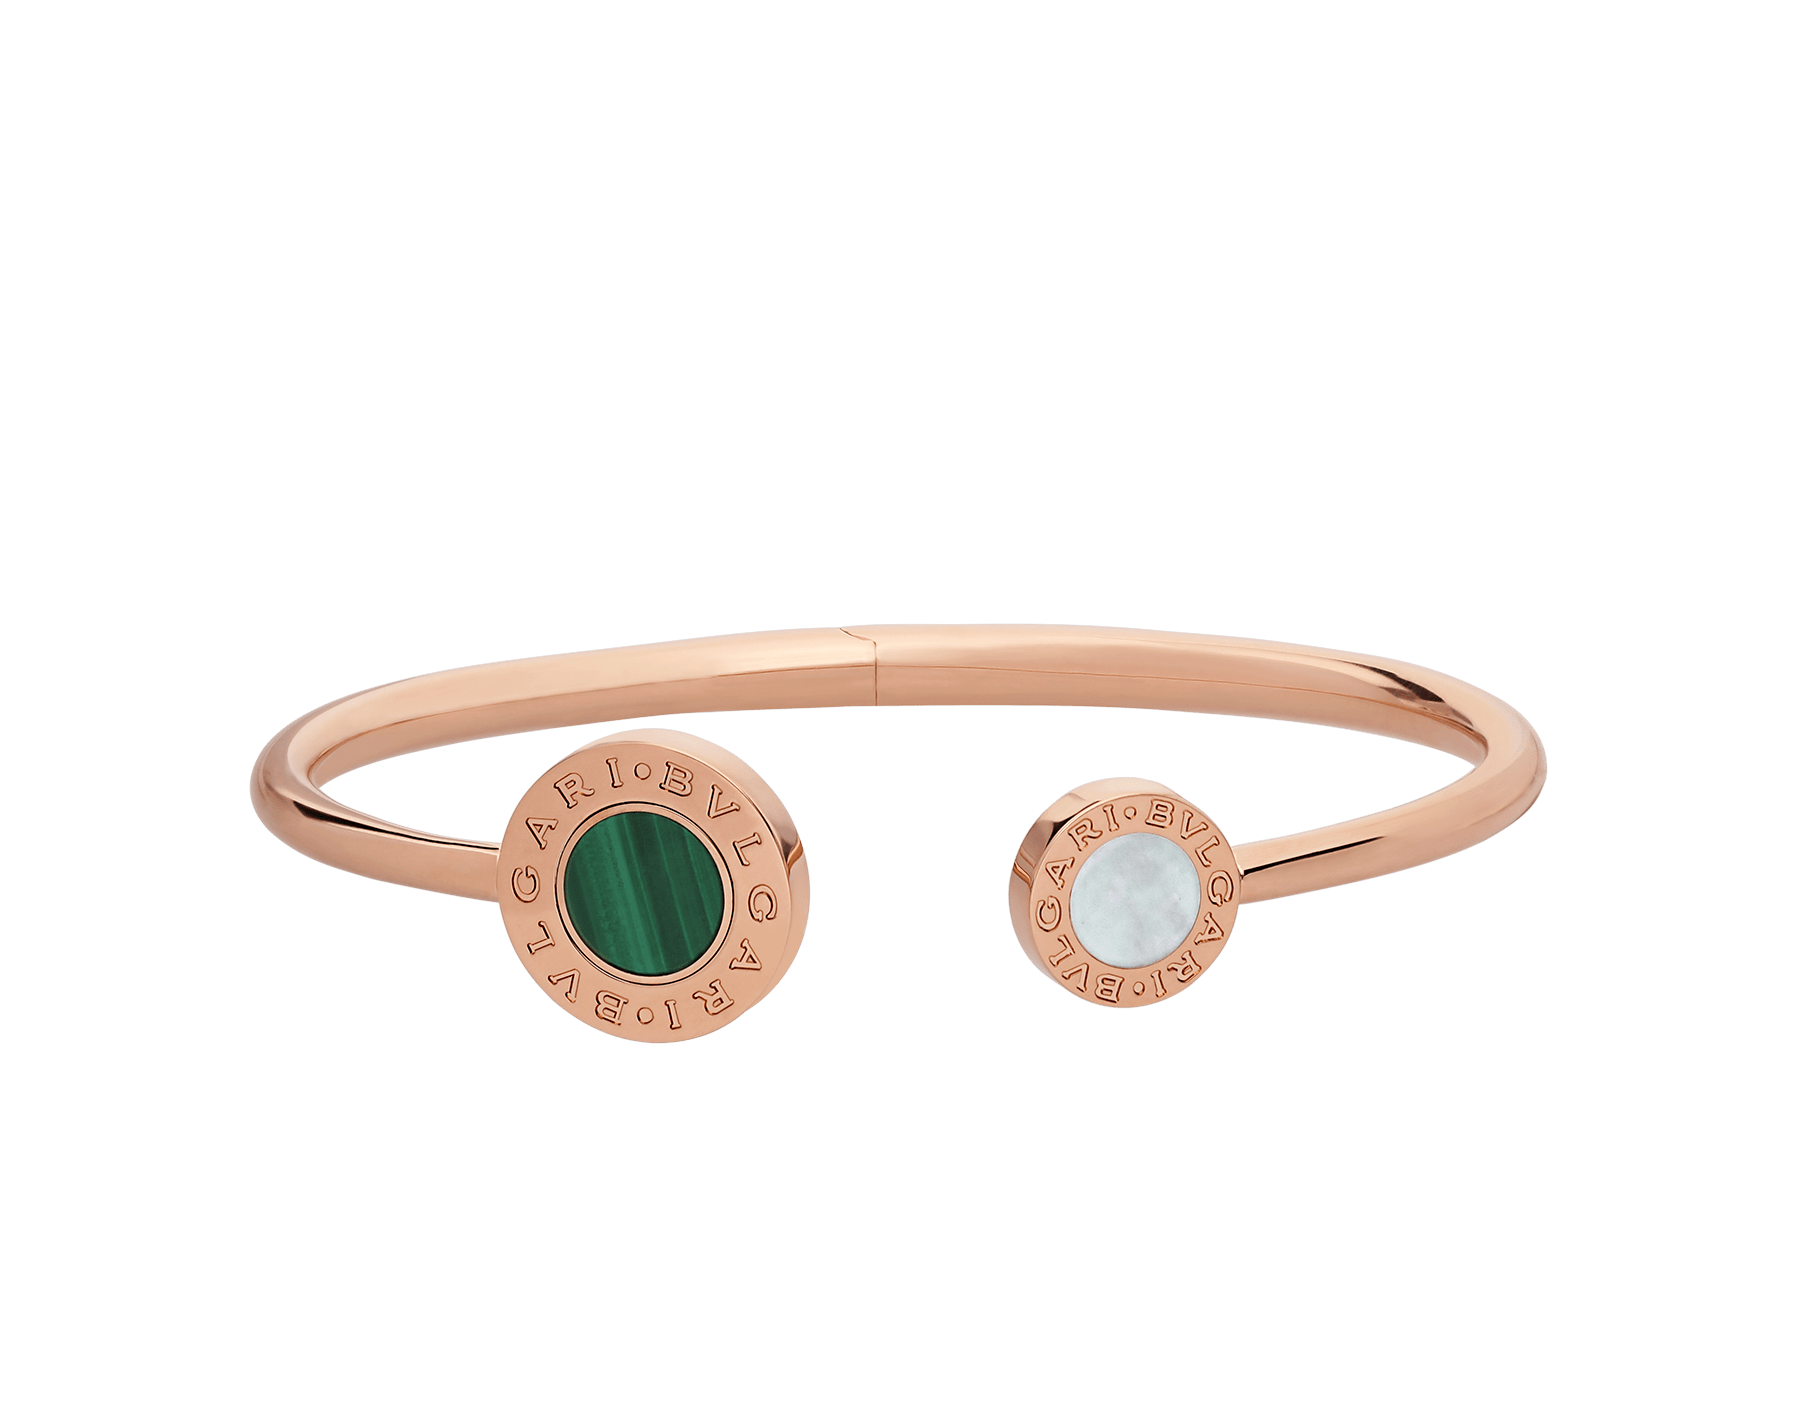 BVLGARI BVLGARI 18 kt rose gold flip bracelet set with mother-of-pearl, onyx and malachite elements BR858422 image 2